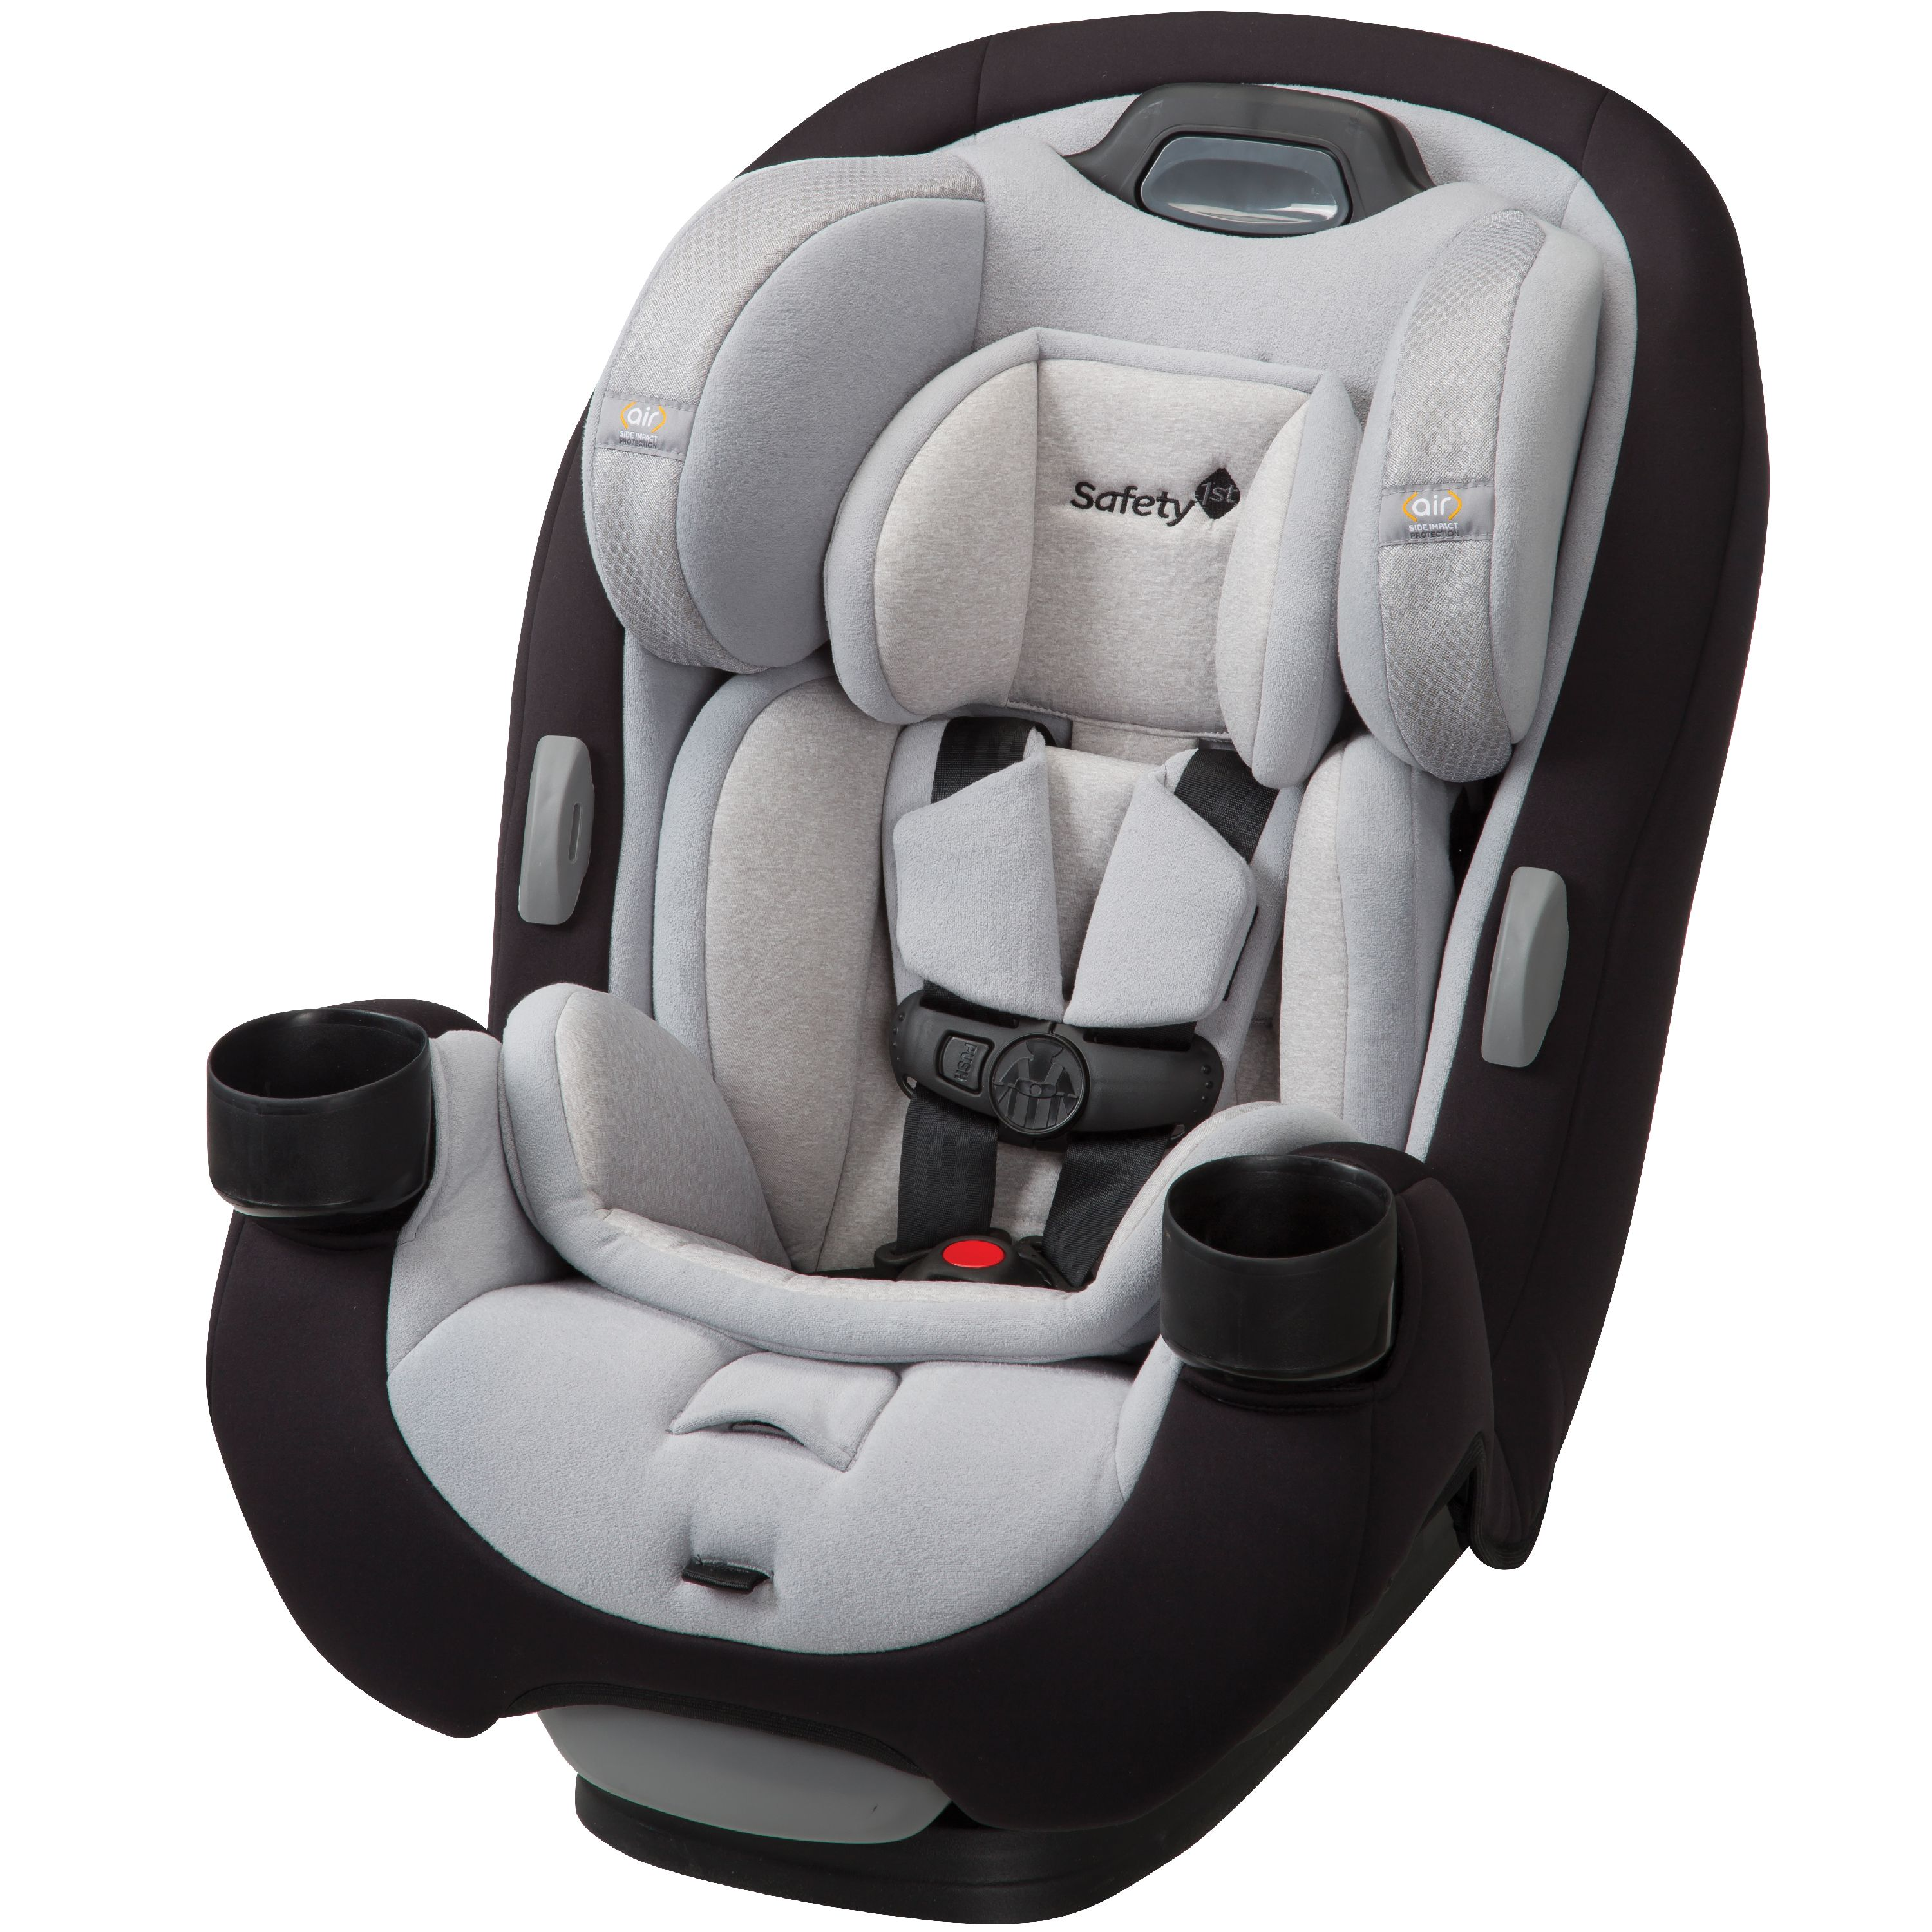 Safety 1�ᵗ Grow and Go EX Air 3-in-1 Convertible Car Seat, Black BIrd by Safety 1st